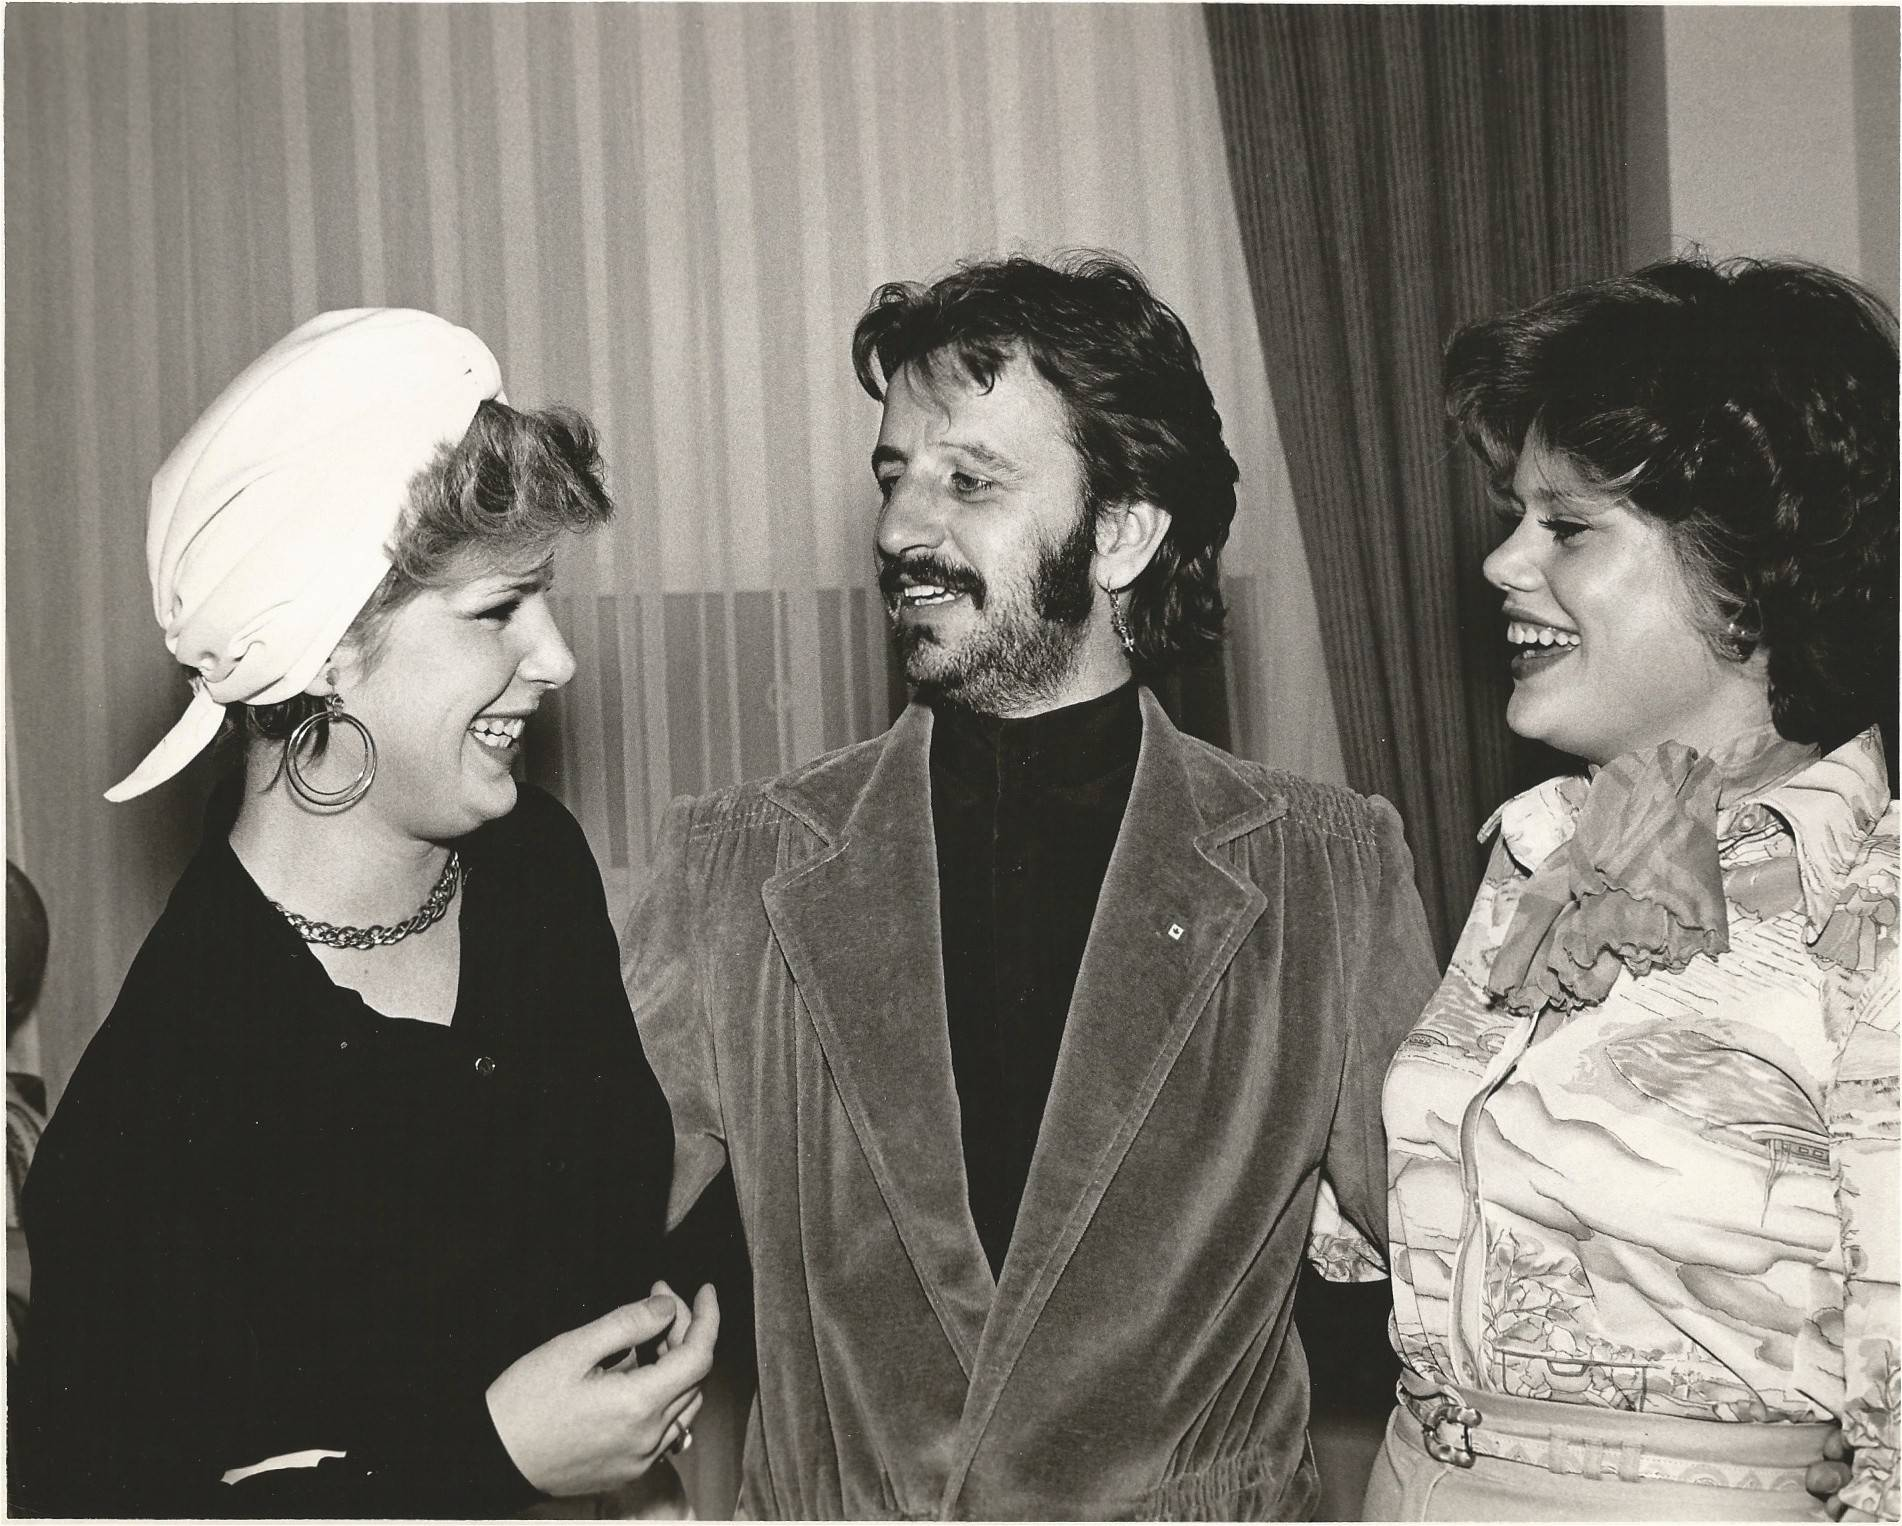 Sisters Debbie, 18, right, and Janet, 19, Frontier enjoy an evening with Ringo Starr in 1975. Jeanette Frontier won a radio station contest and gave her daughters the prize.